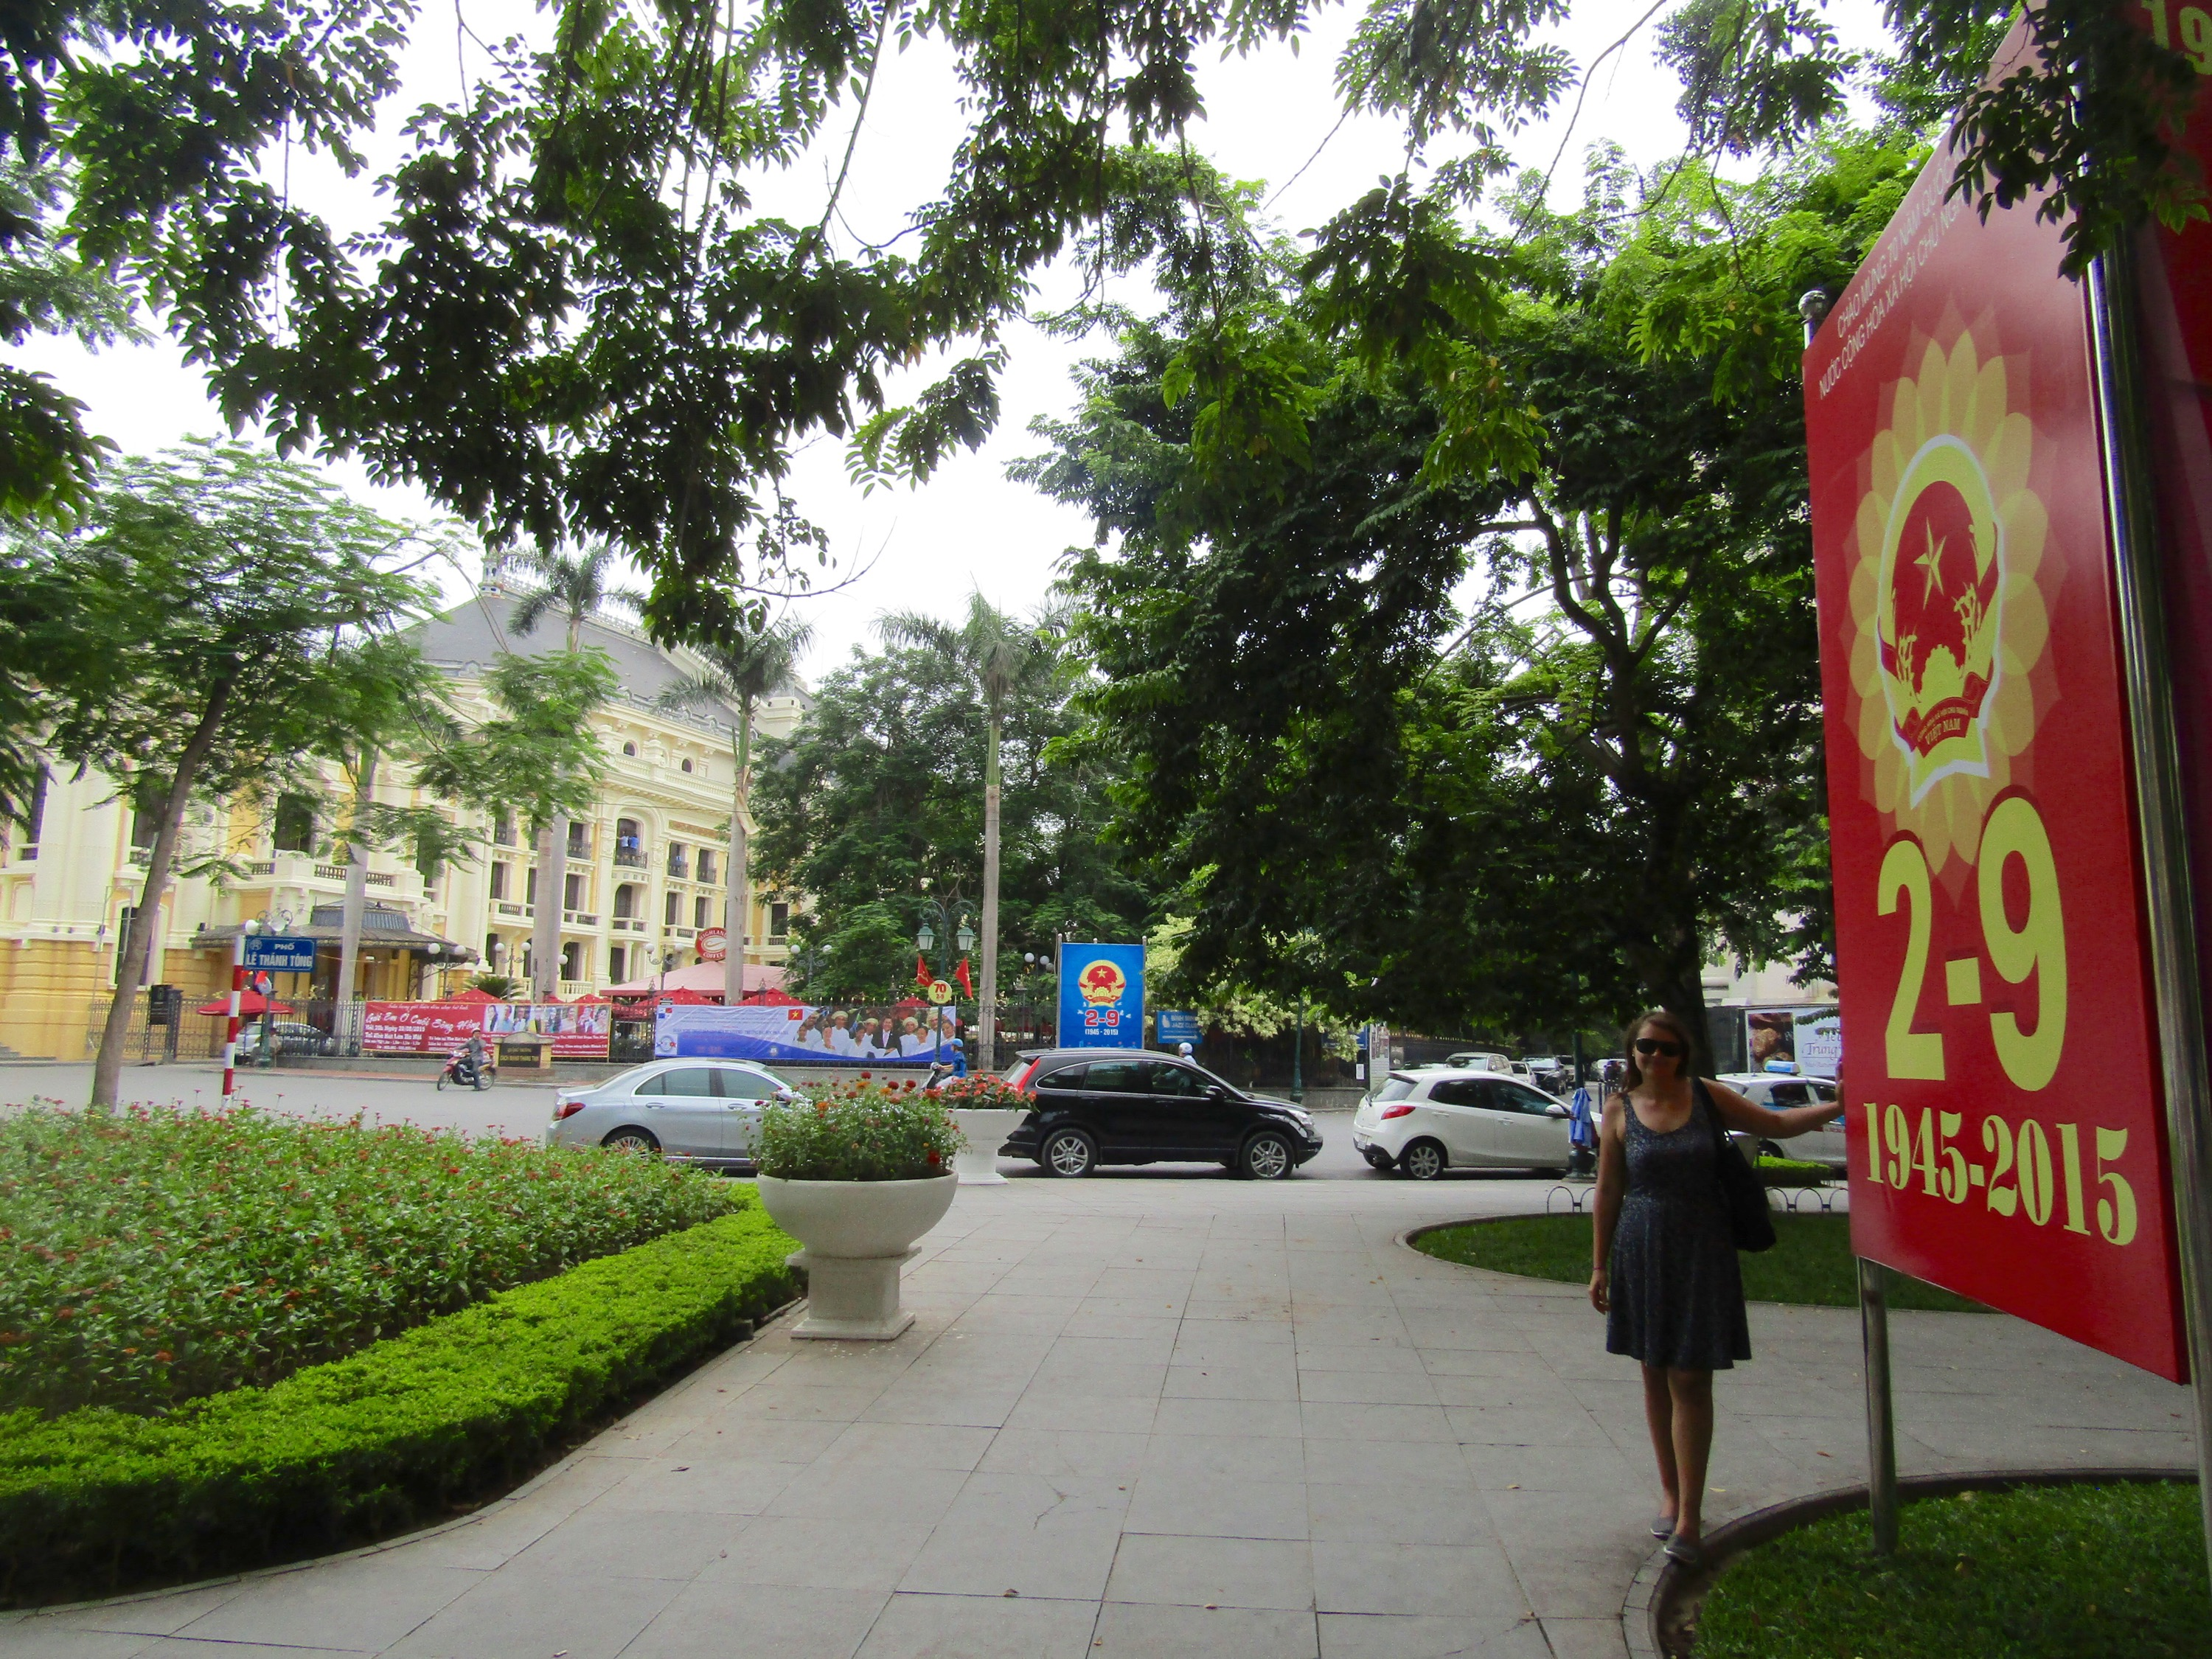 Hanoi is teeming with posters and in-construction decorations in preparation for the country's 70th anniversary of independence on September 2. Should be quite a party!